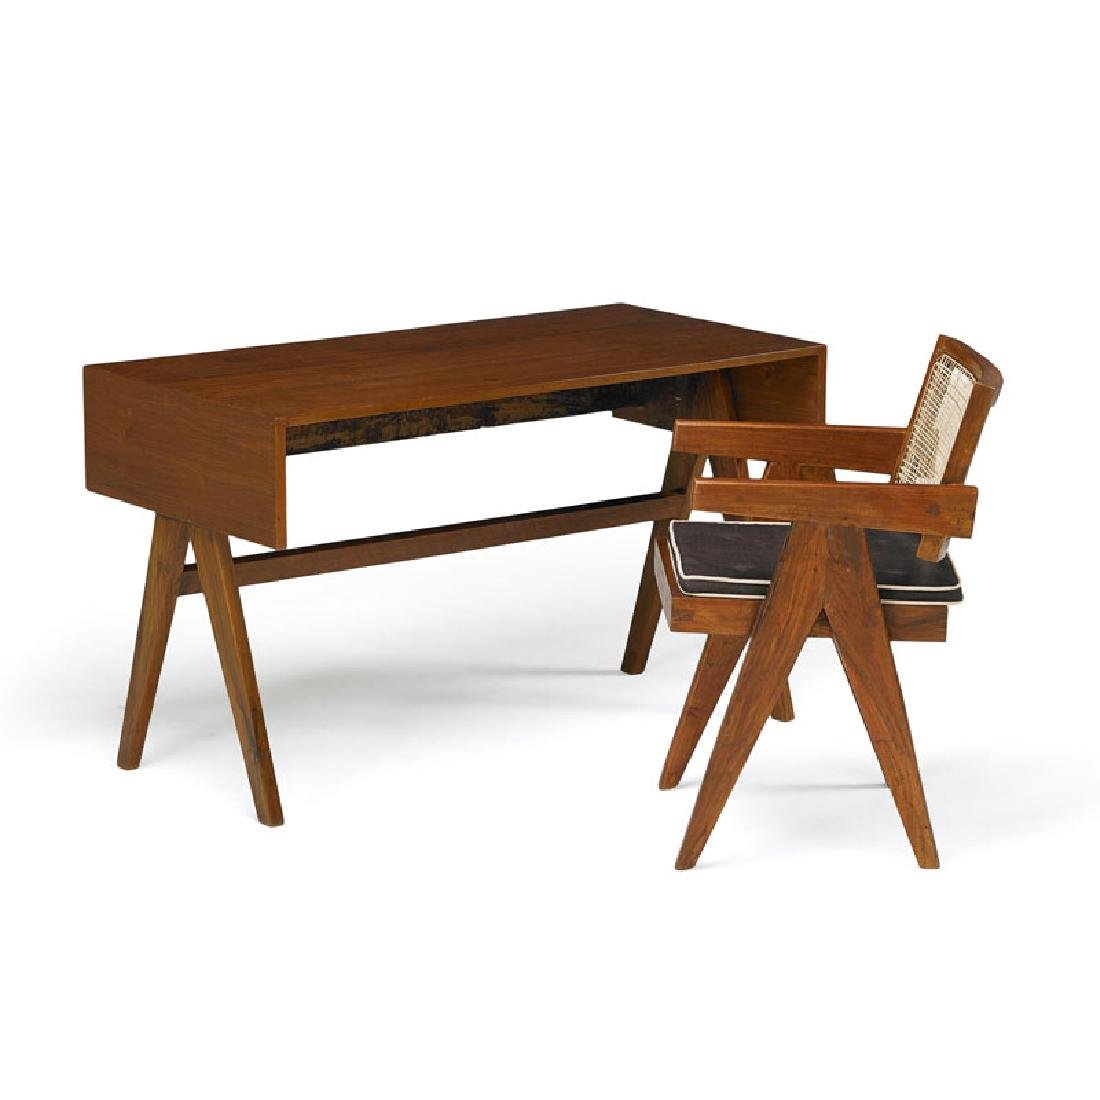 PIERRE JEANNERET Student desk and armchair